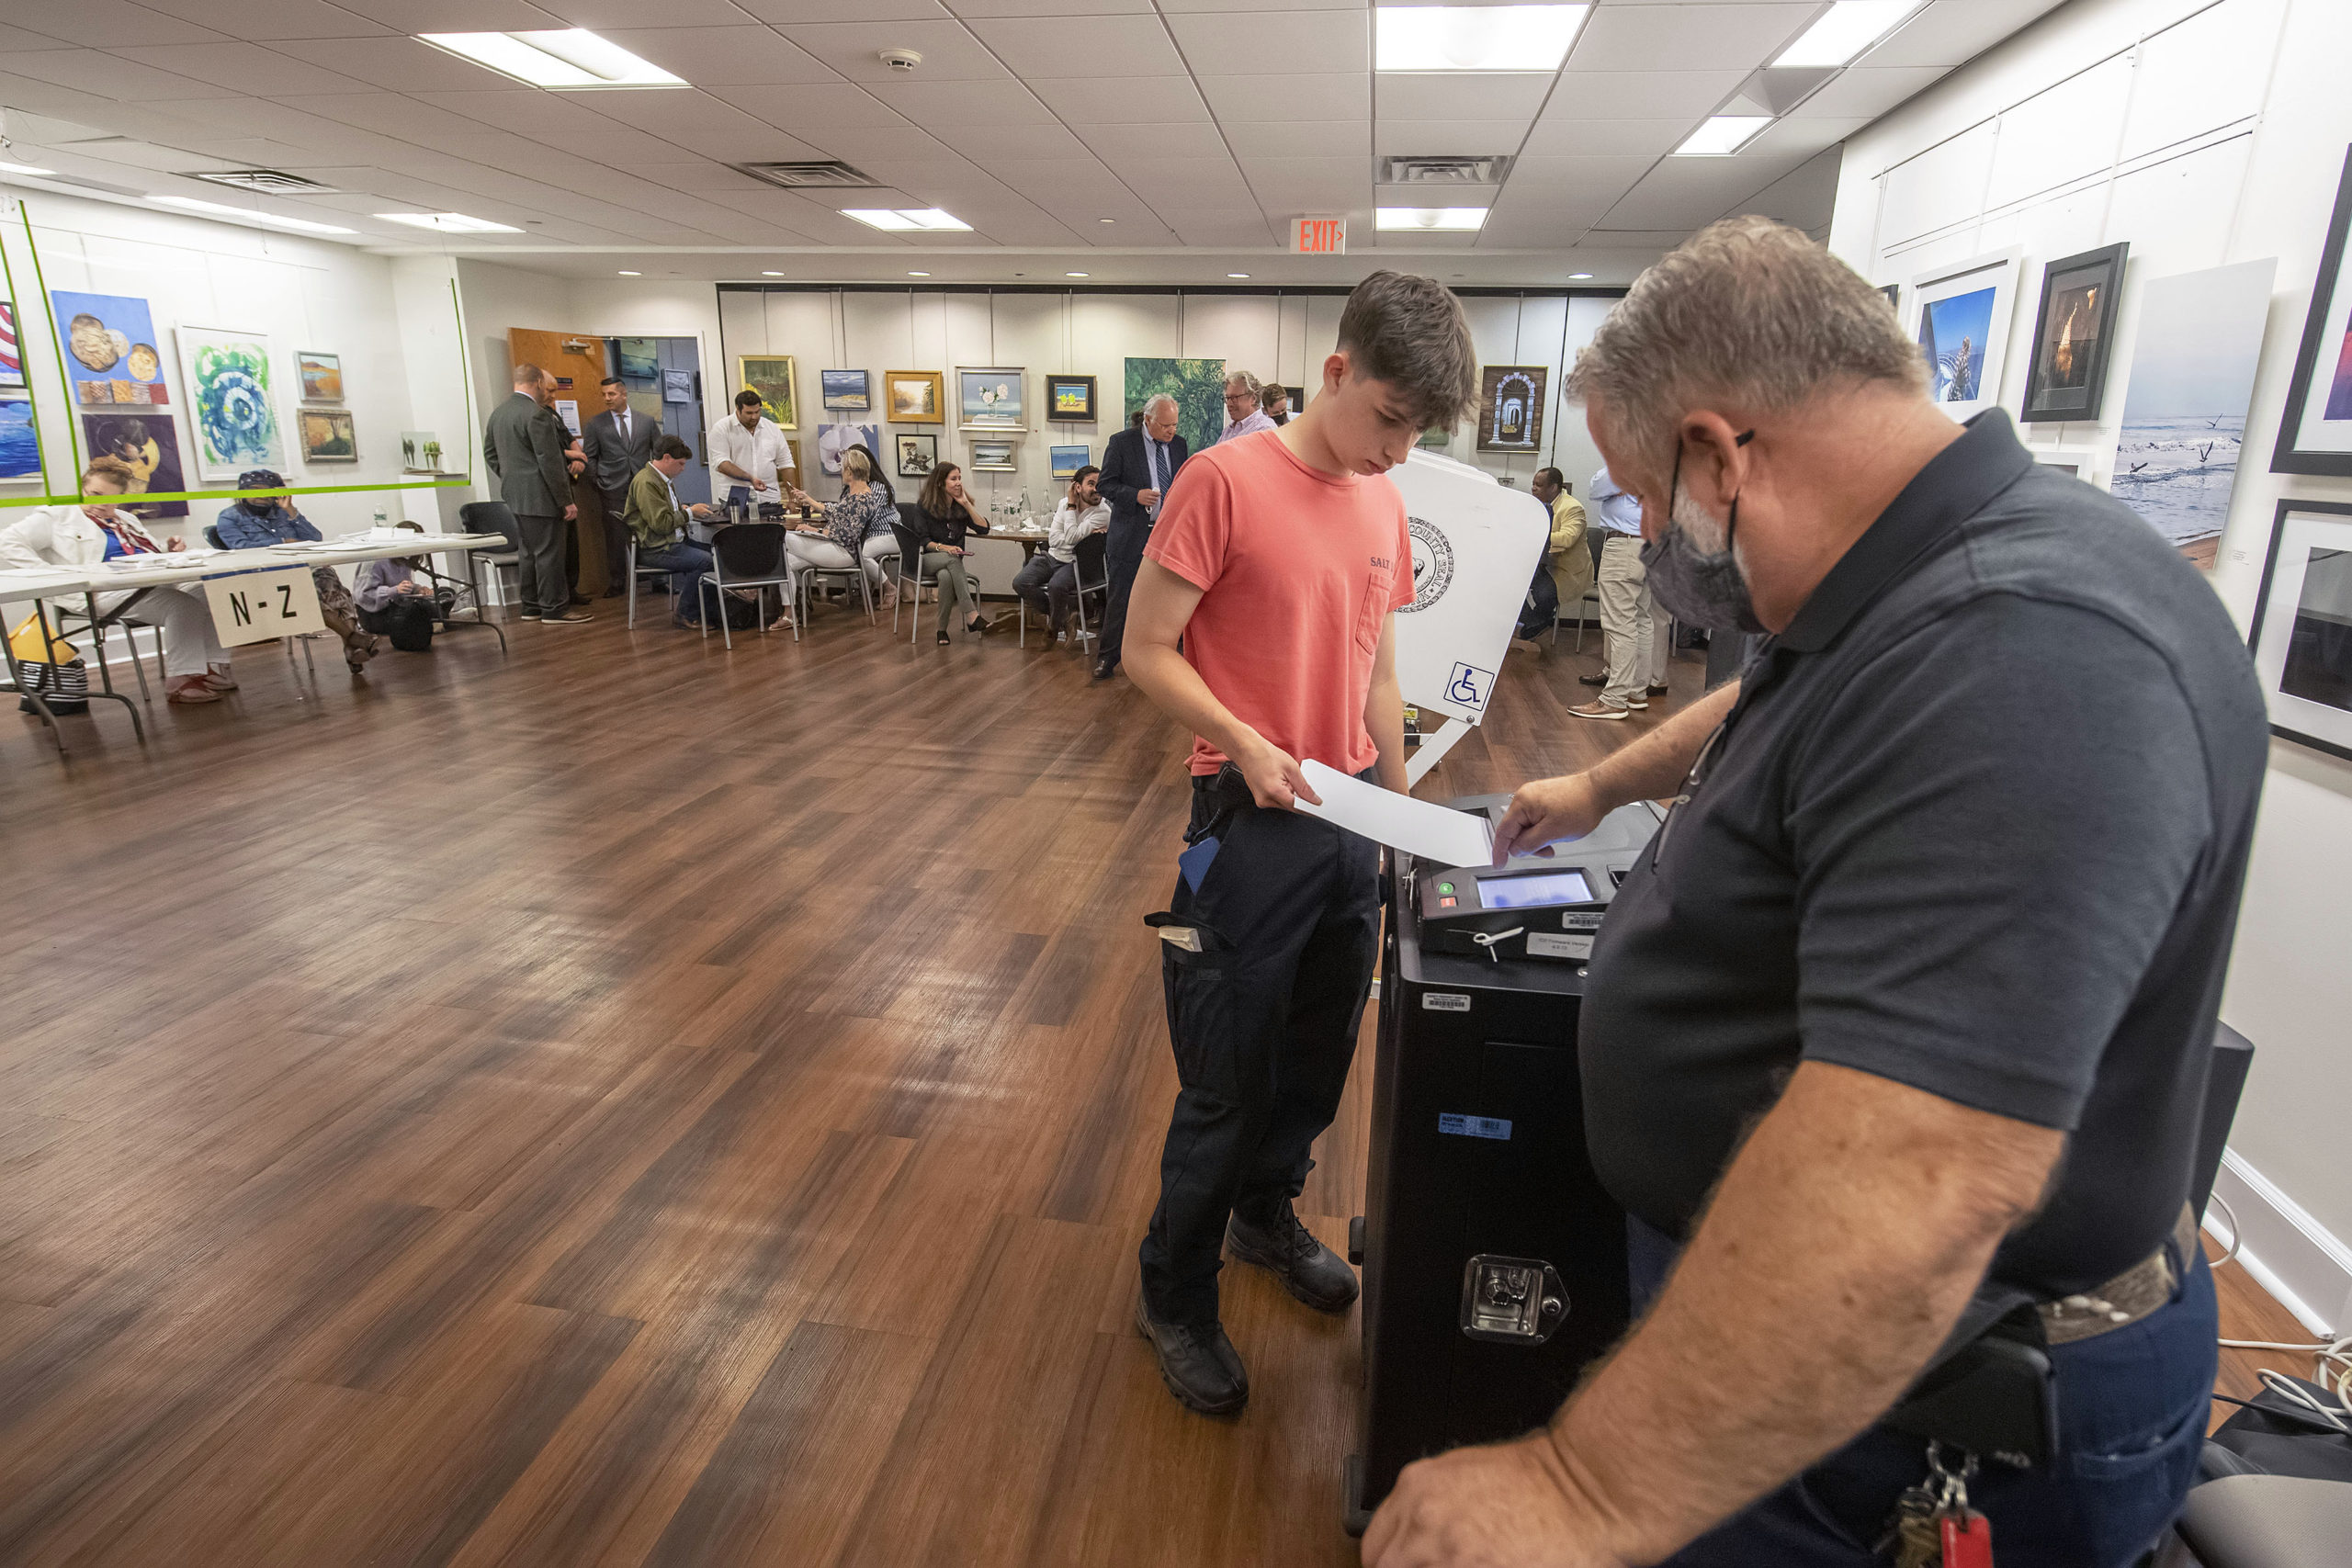 An election official helps a young voter insert his ballot into the voting machine during the 2021 Southampton Village Mayoral election at the Southampton Cultural Center on Friday night. MICHAEL HELLER